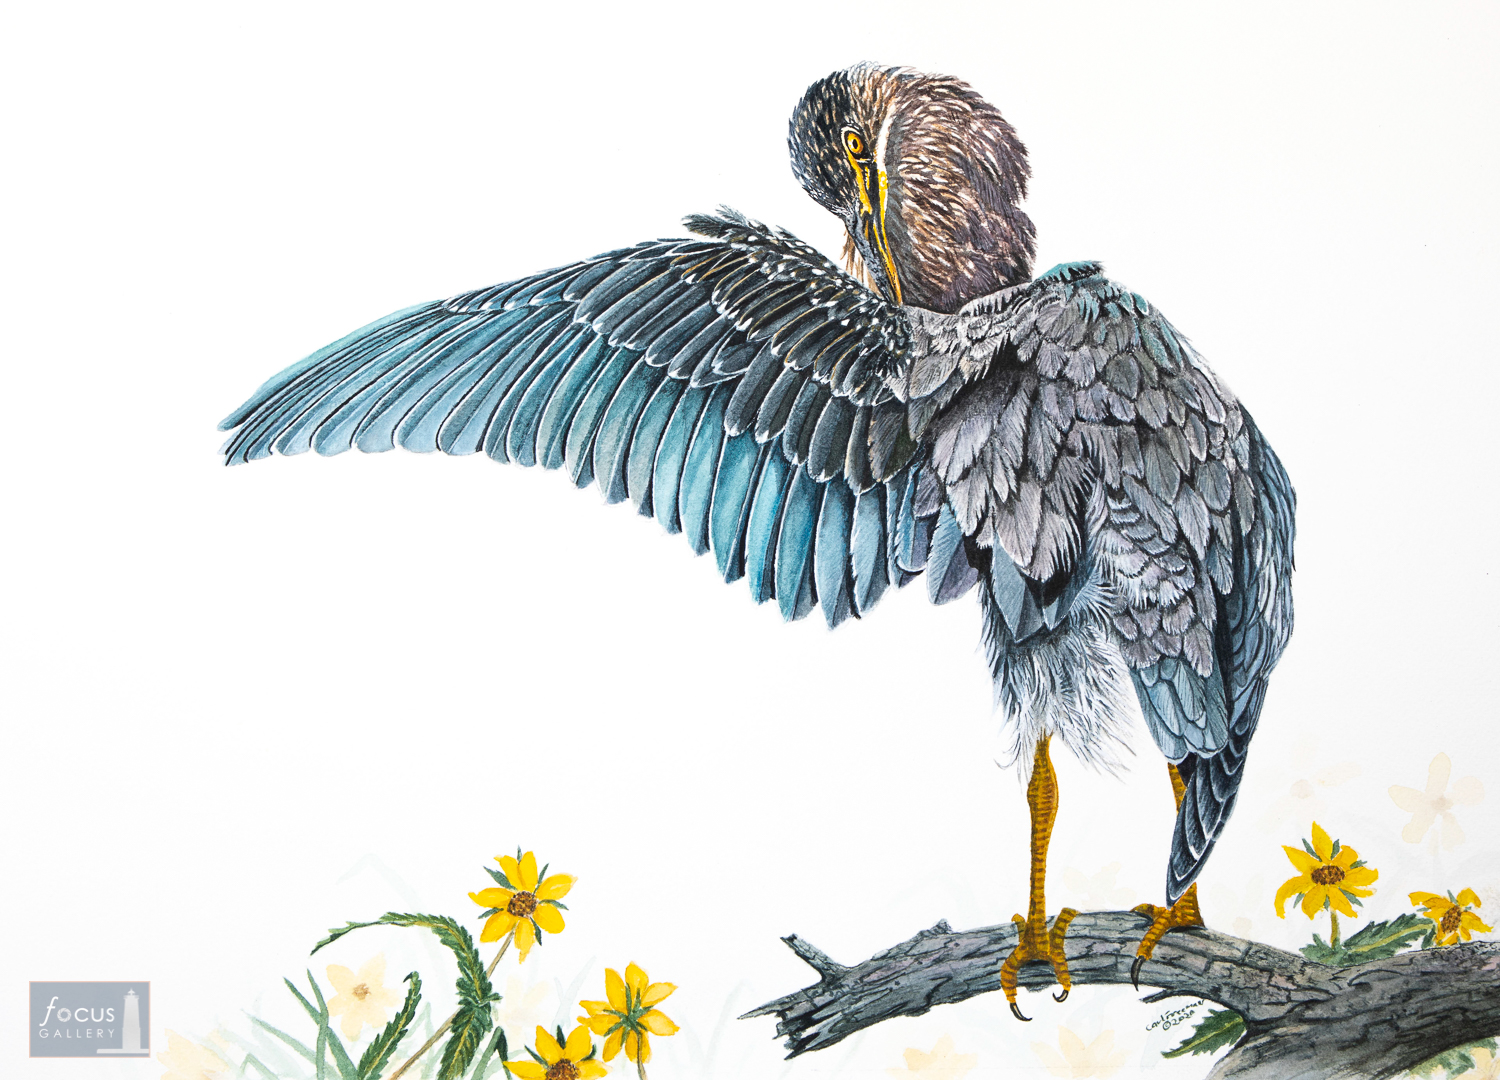 Original watercolor painting of a juvenile Green Heron stretching its wings with yellow flowers nearby.